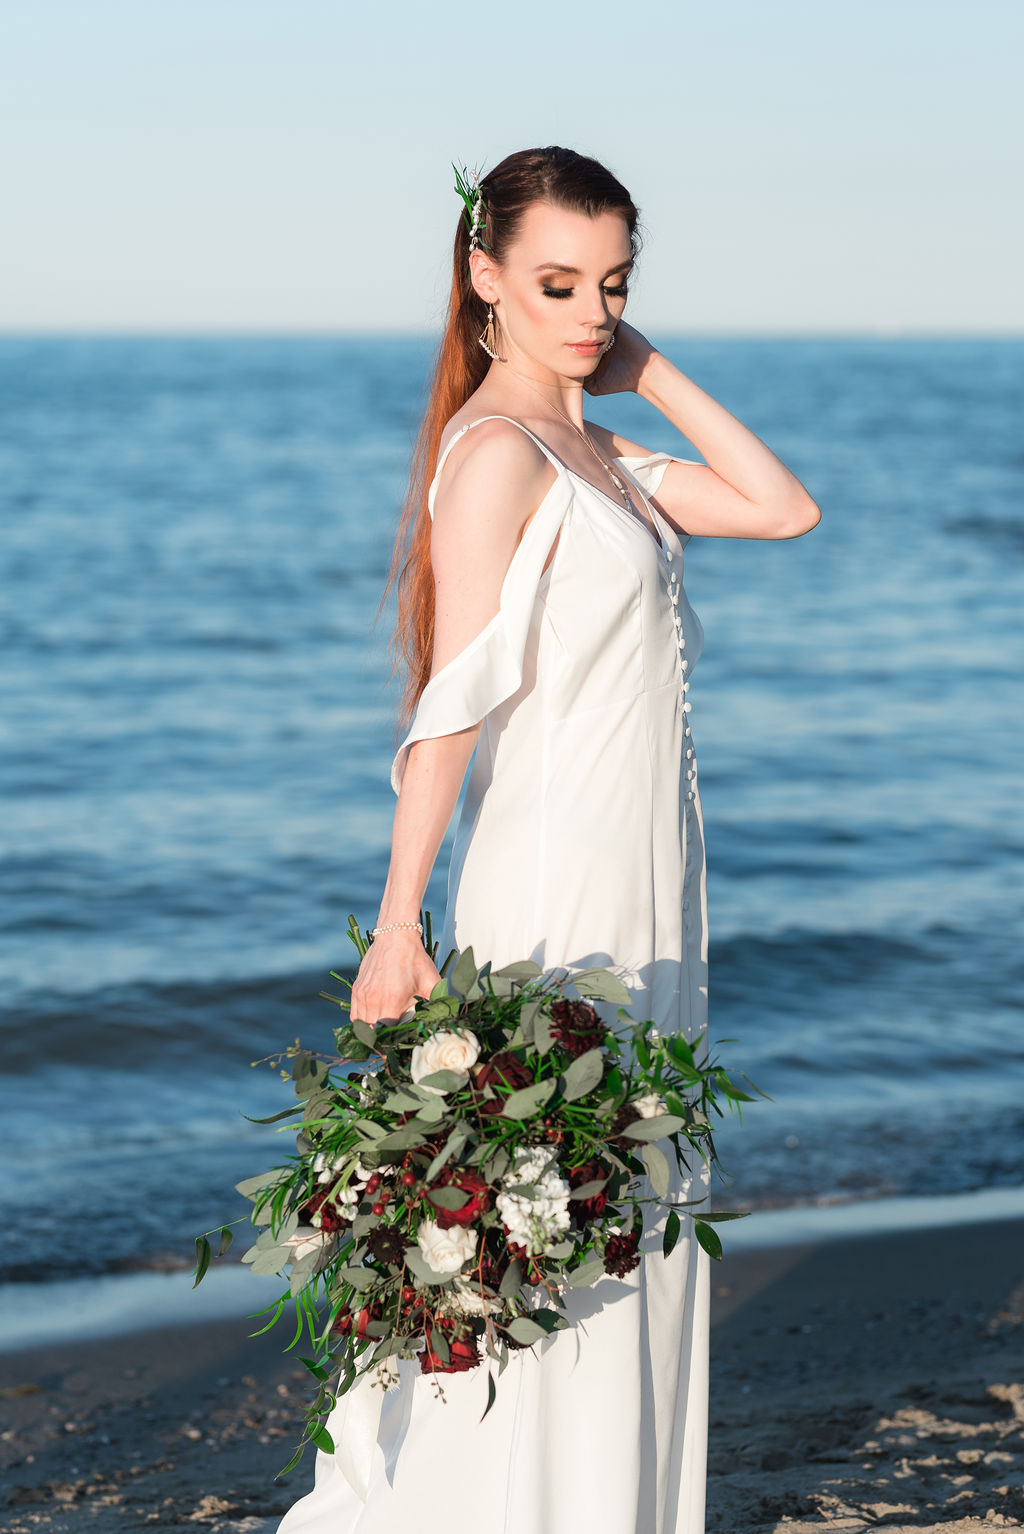 Boho-Chic: Beach Wedding in the City - Historia Wedding and Event Planning